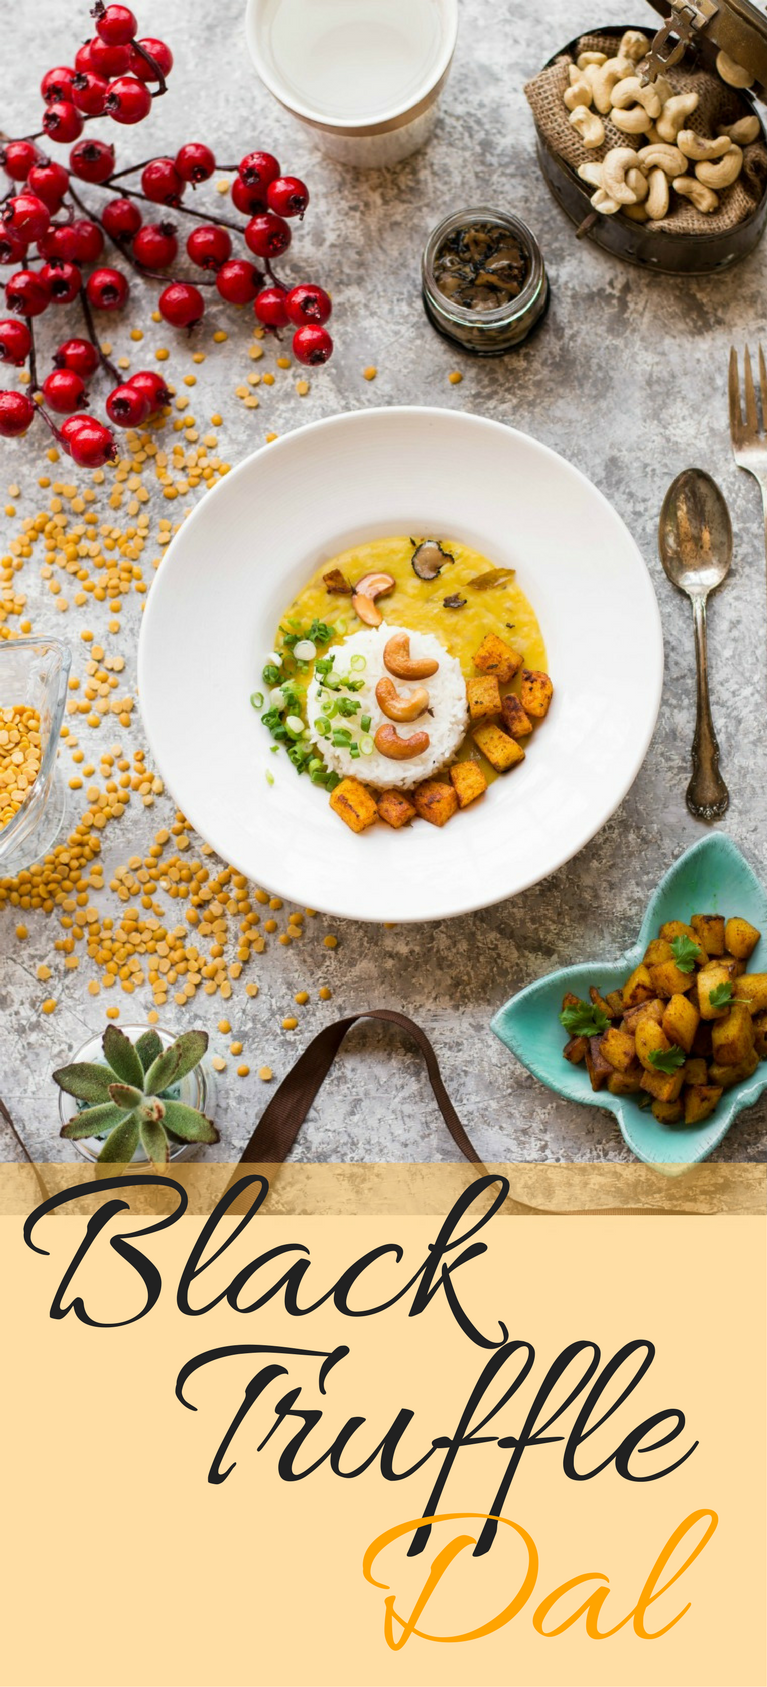 Transform the quintessential Indian comfort food, Rice and Dal into a gourmet indulgence with Black Truffle slices - Black Truffle Dal! #indian #indianfood #indianfusion #fusionfood #lentil #dal